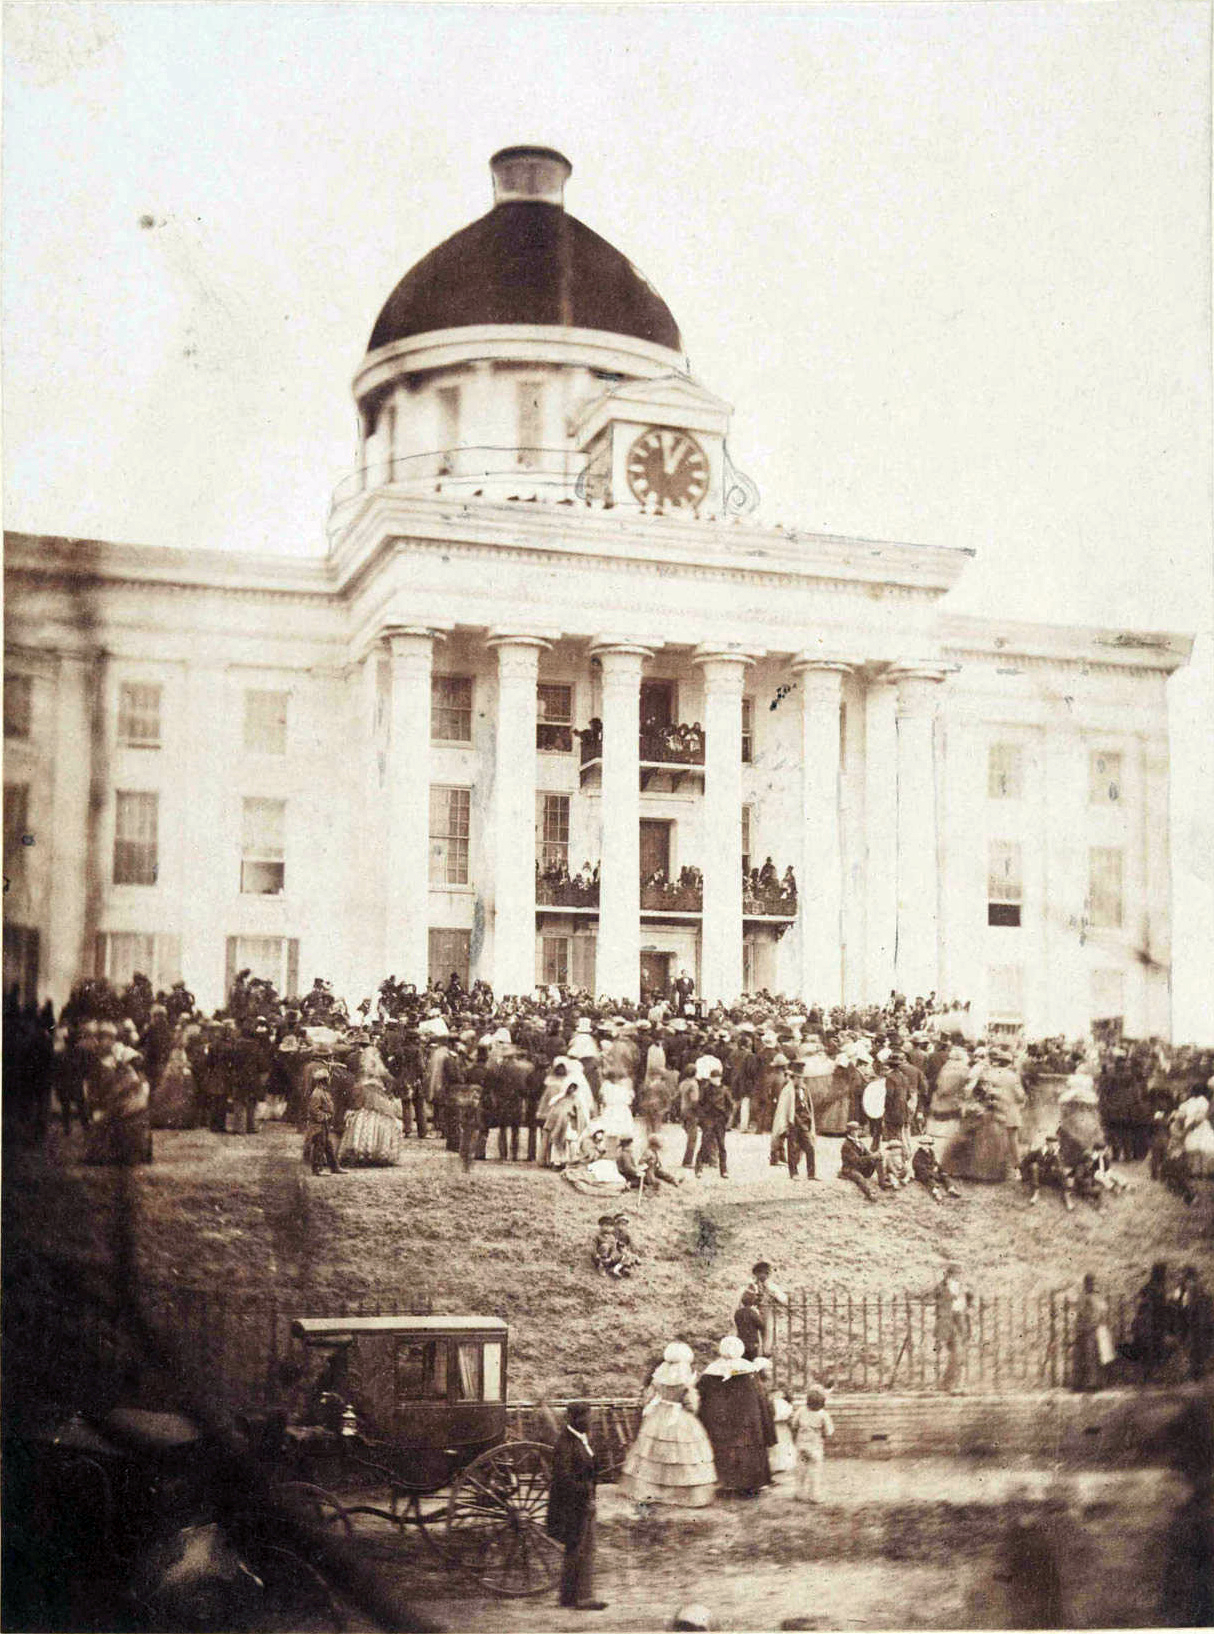 https://upload.wikimedia.org/wikipedia/commons/e/e7/1861_Davis_Inaugural.jpg